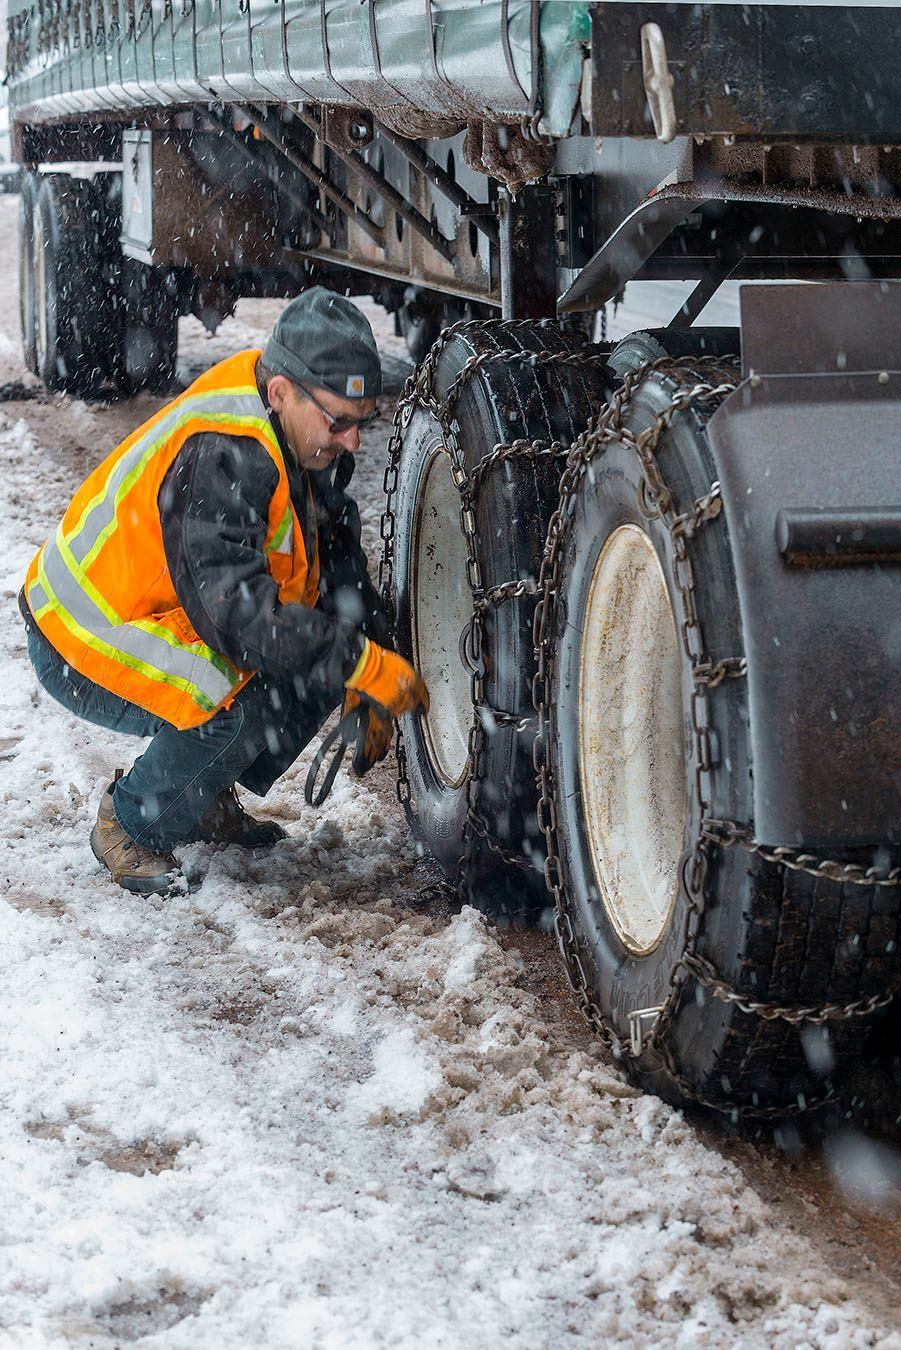 A record-setting winter storm hit southern Oregon and northern California on the Tuesday before Thanksgiving, making travel on Interstate 5 and over the Oregon Cascades difficult - if not impossible. (ODOT)